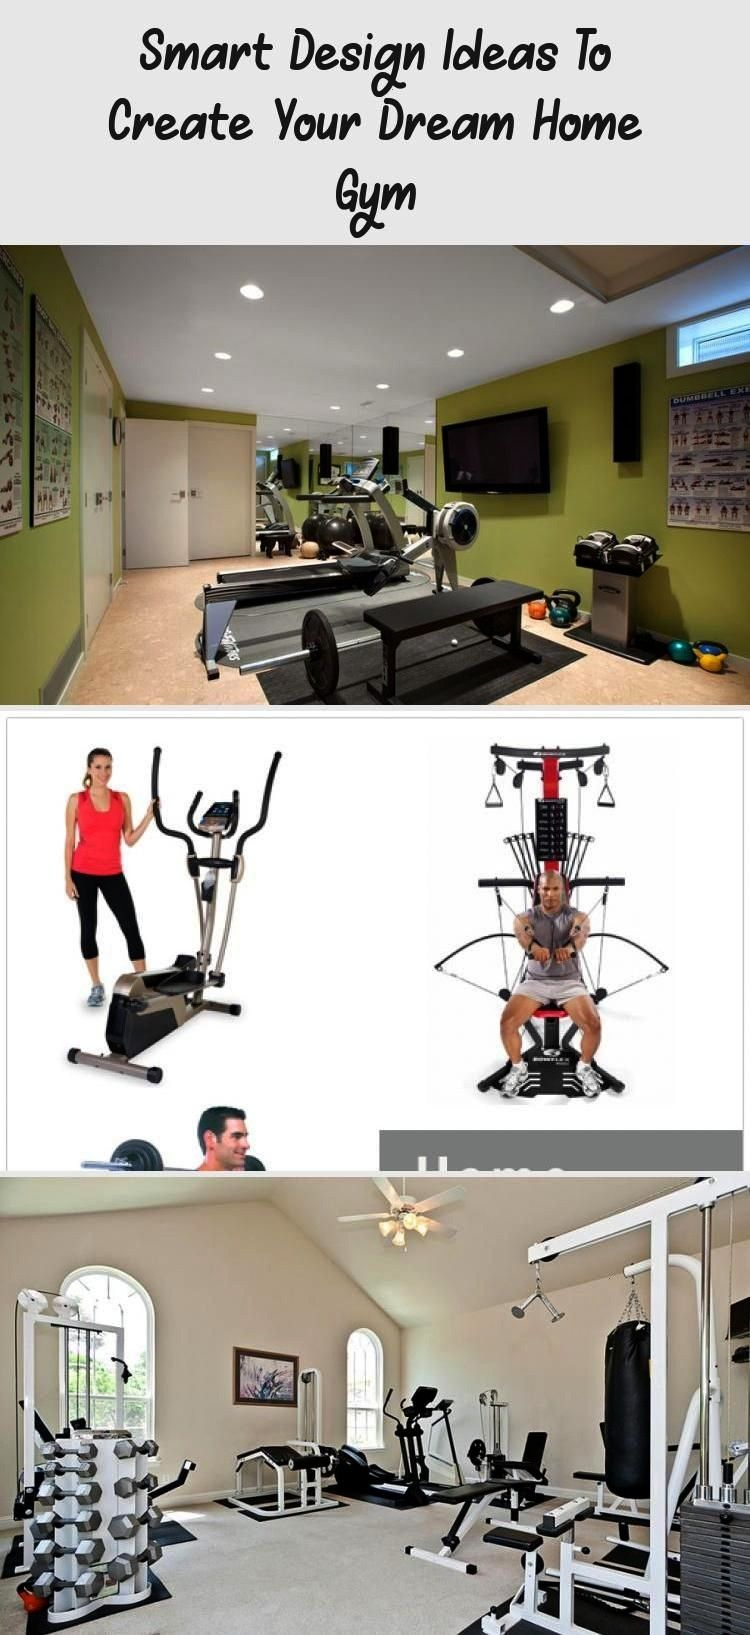 home gym ideas  Tap the pin if you love super heroes too Cause guess whadreamdream home gym ideas  Tap the pin if you love super heroes too Cause guess whadream Check out...